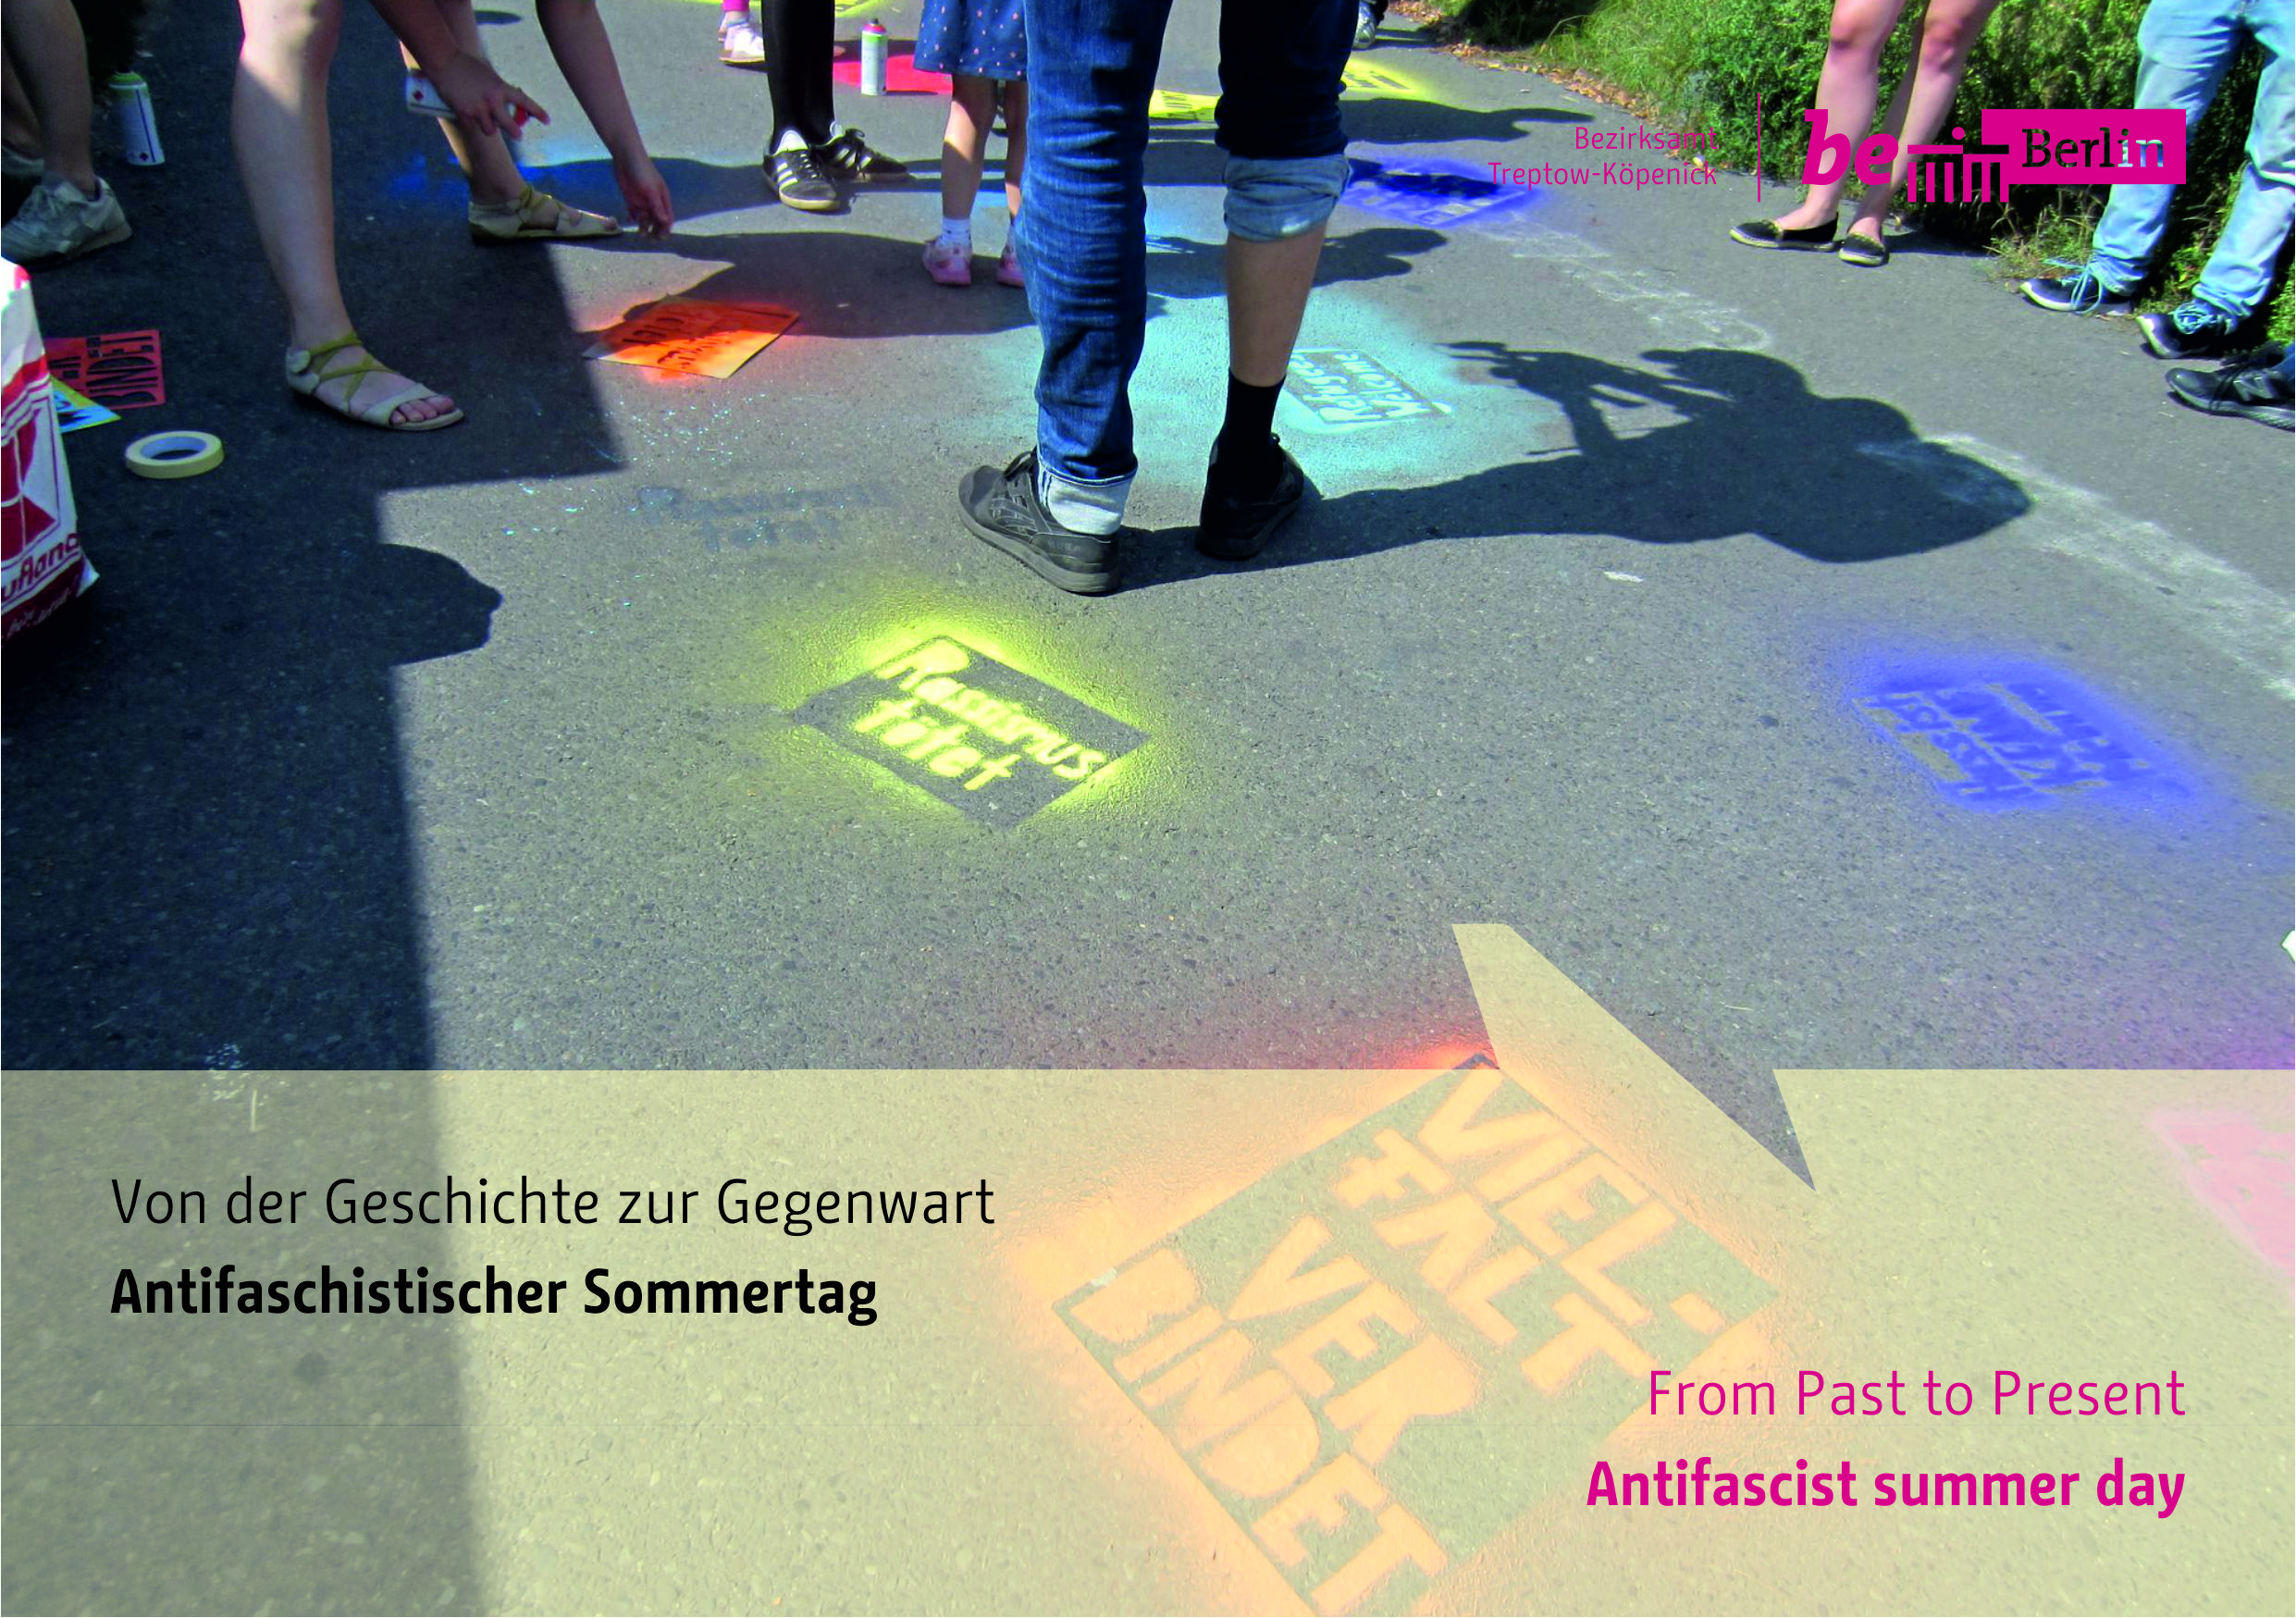 Antifaschistischer Sommertag am 8. August